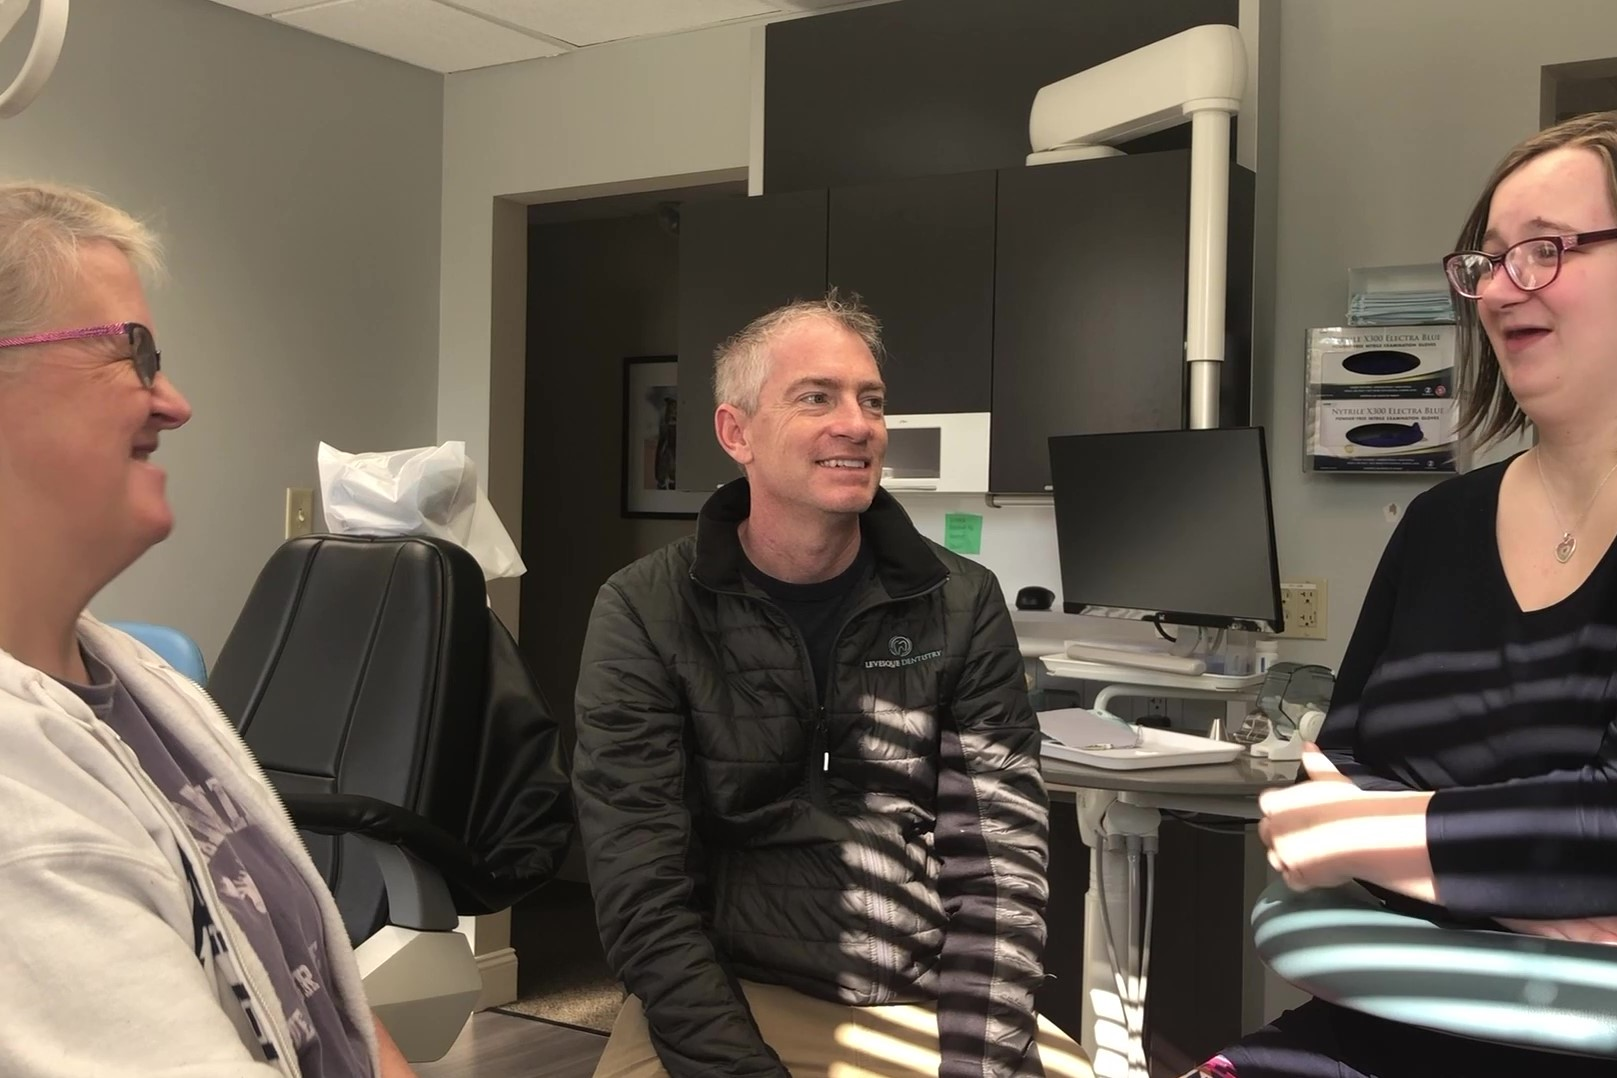 Three people in a dentists office having a conversation